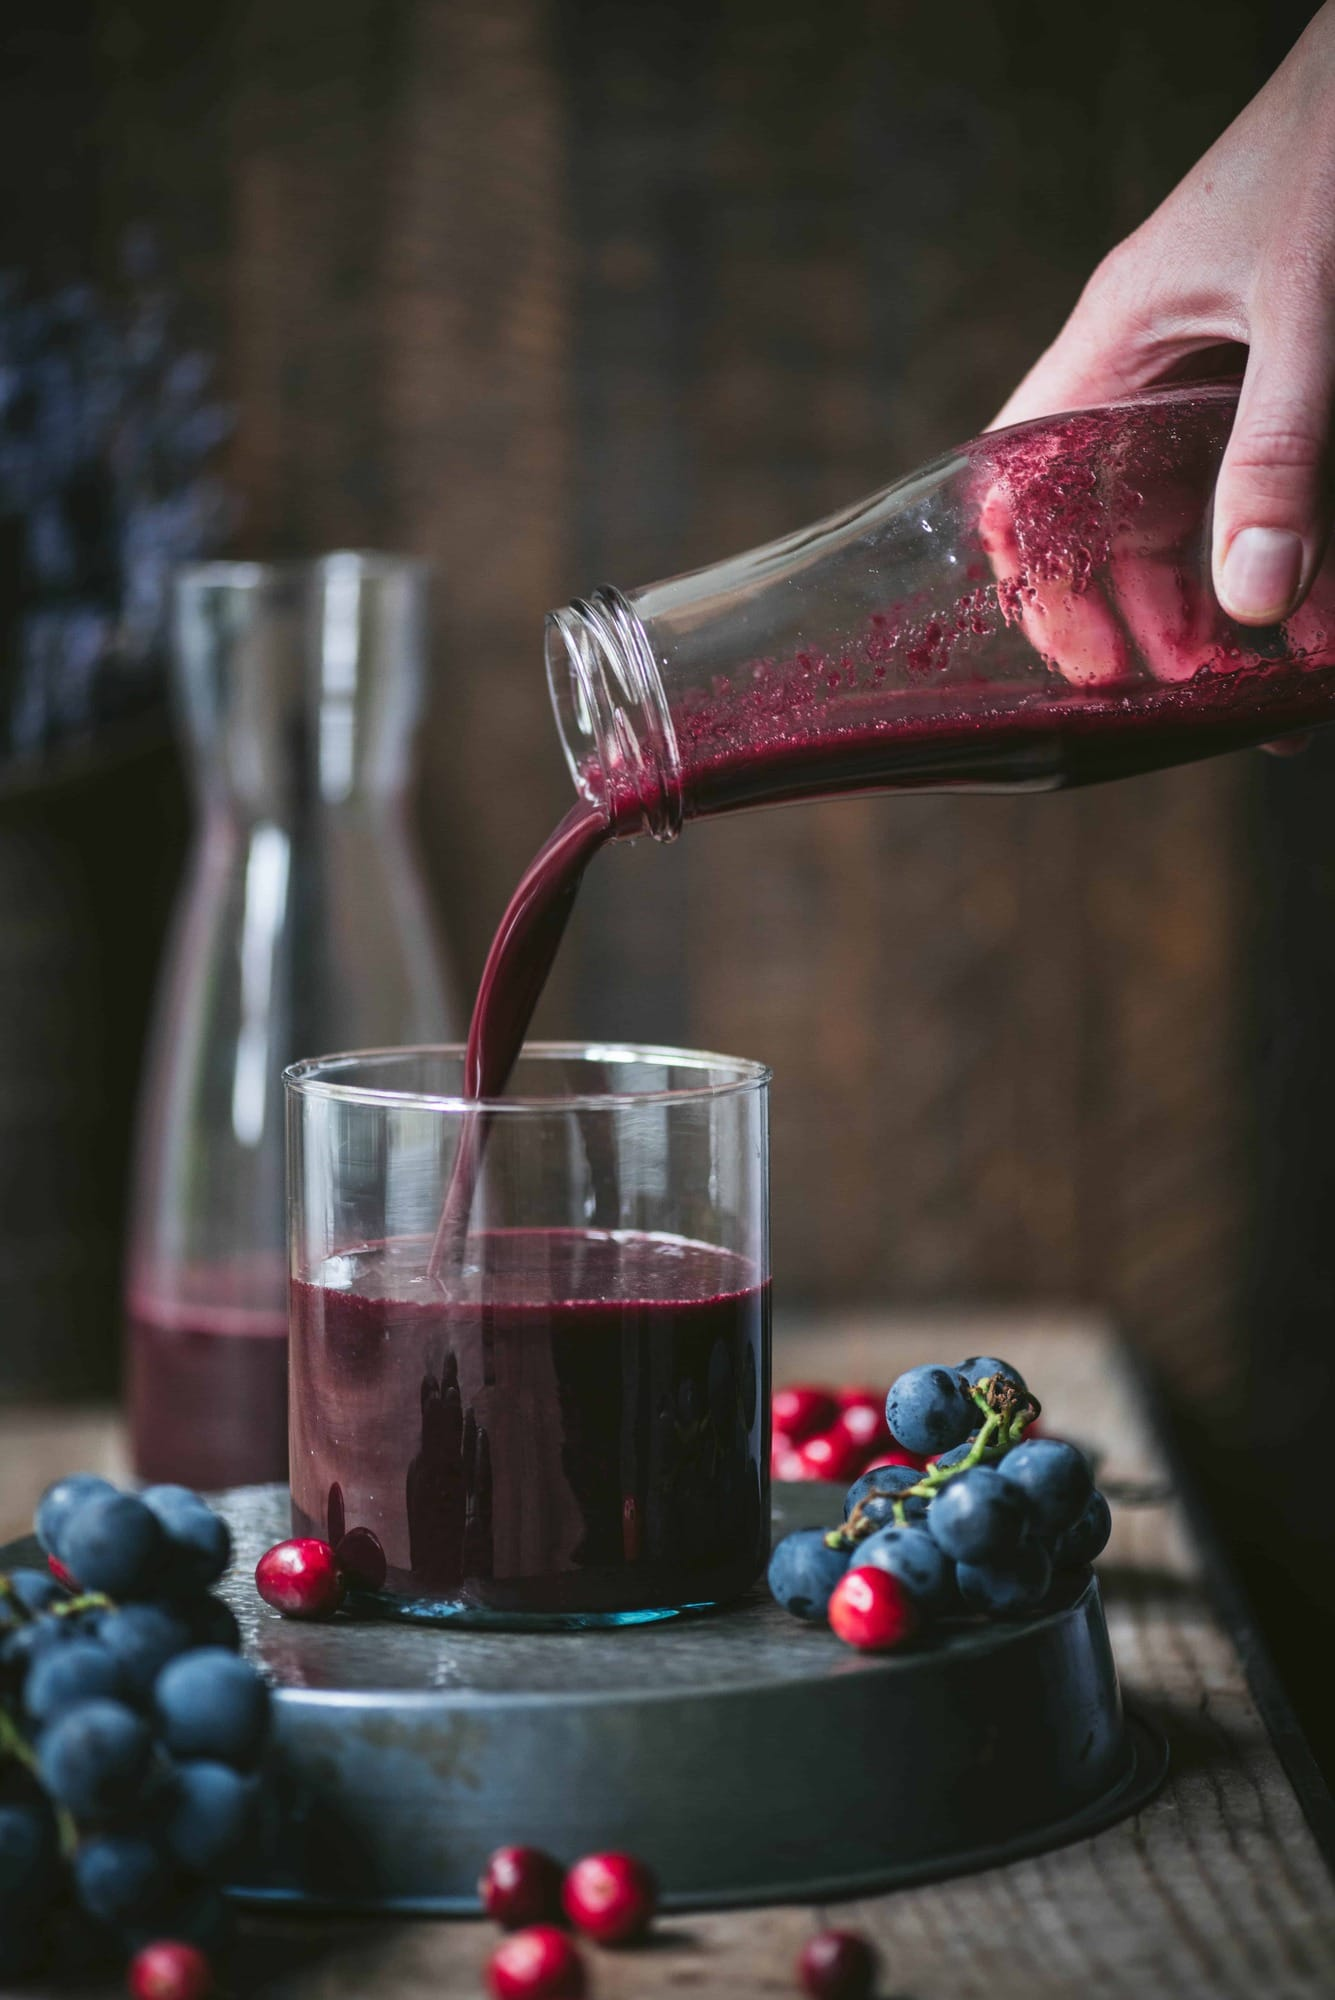 Homemade concord grape and cranberry juice being poured into a glass